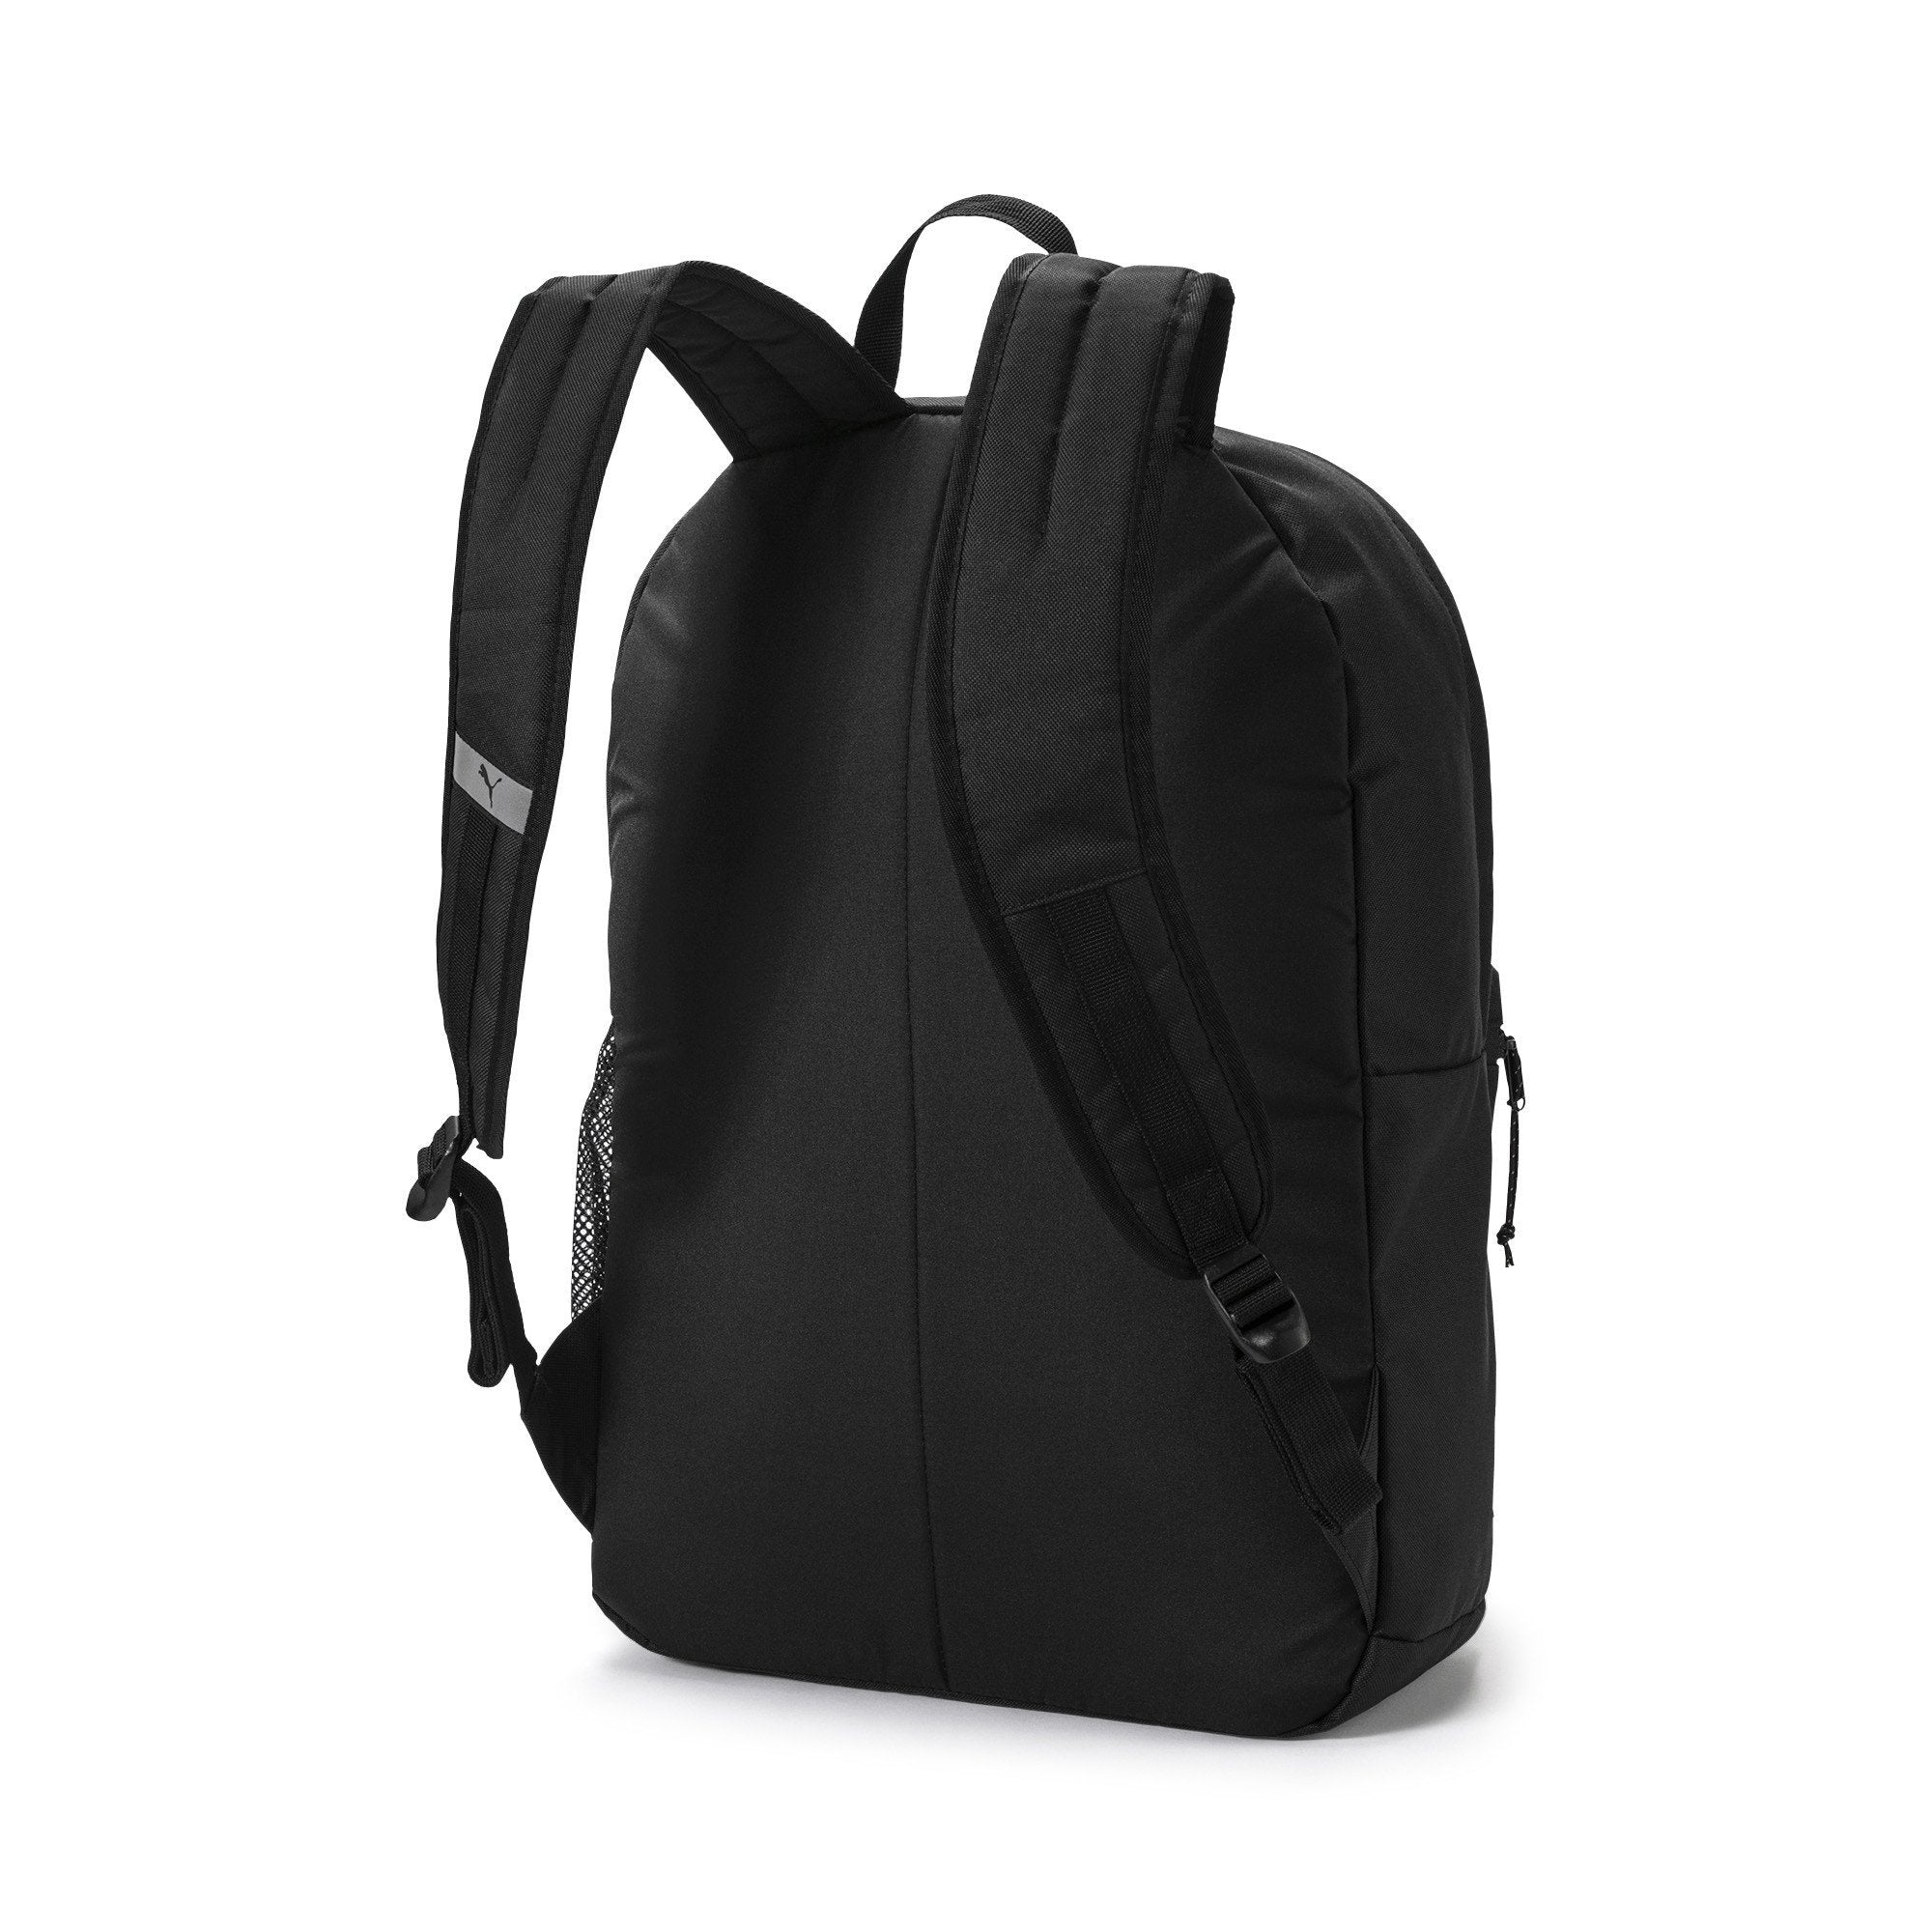 Puma Academy Backpack - Puma Black SP-Accessories-Bags Puma